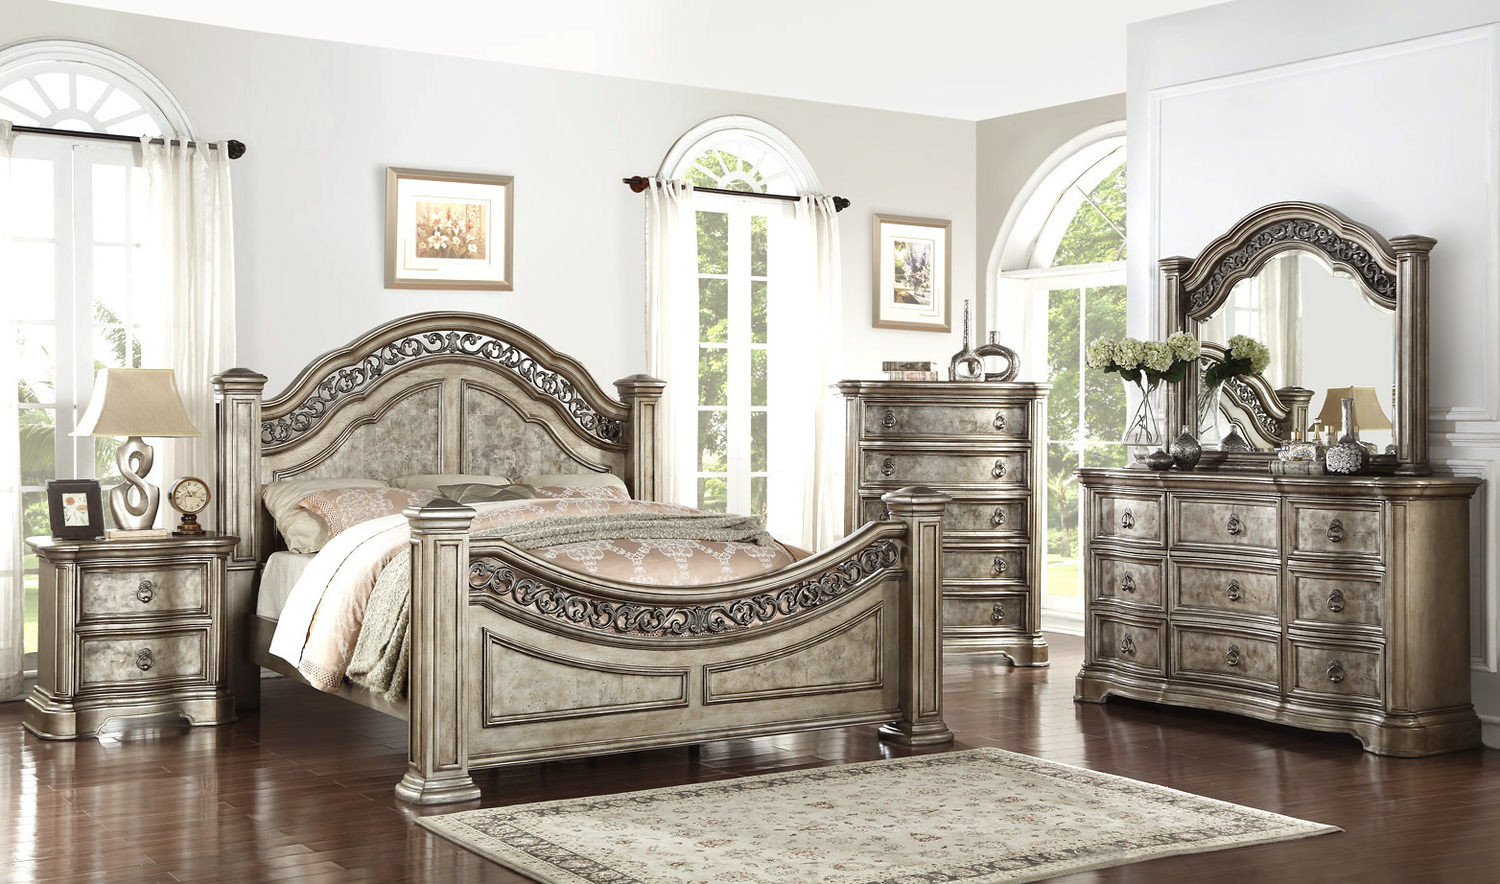 Valencia Queen 4 Pc Bedroom Set ...